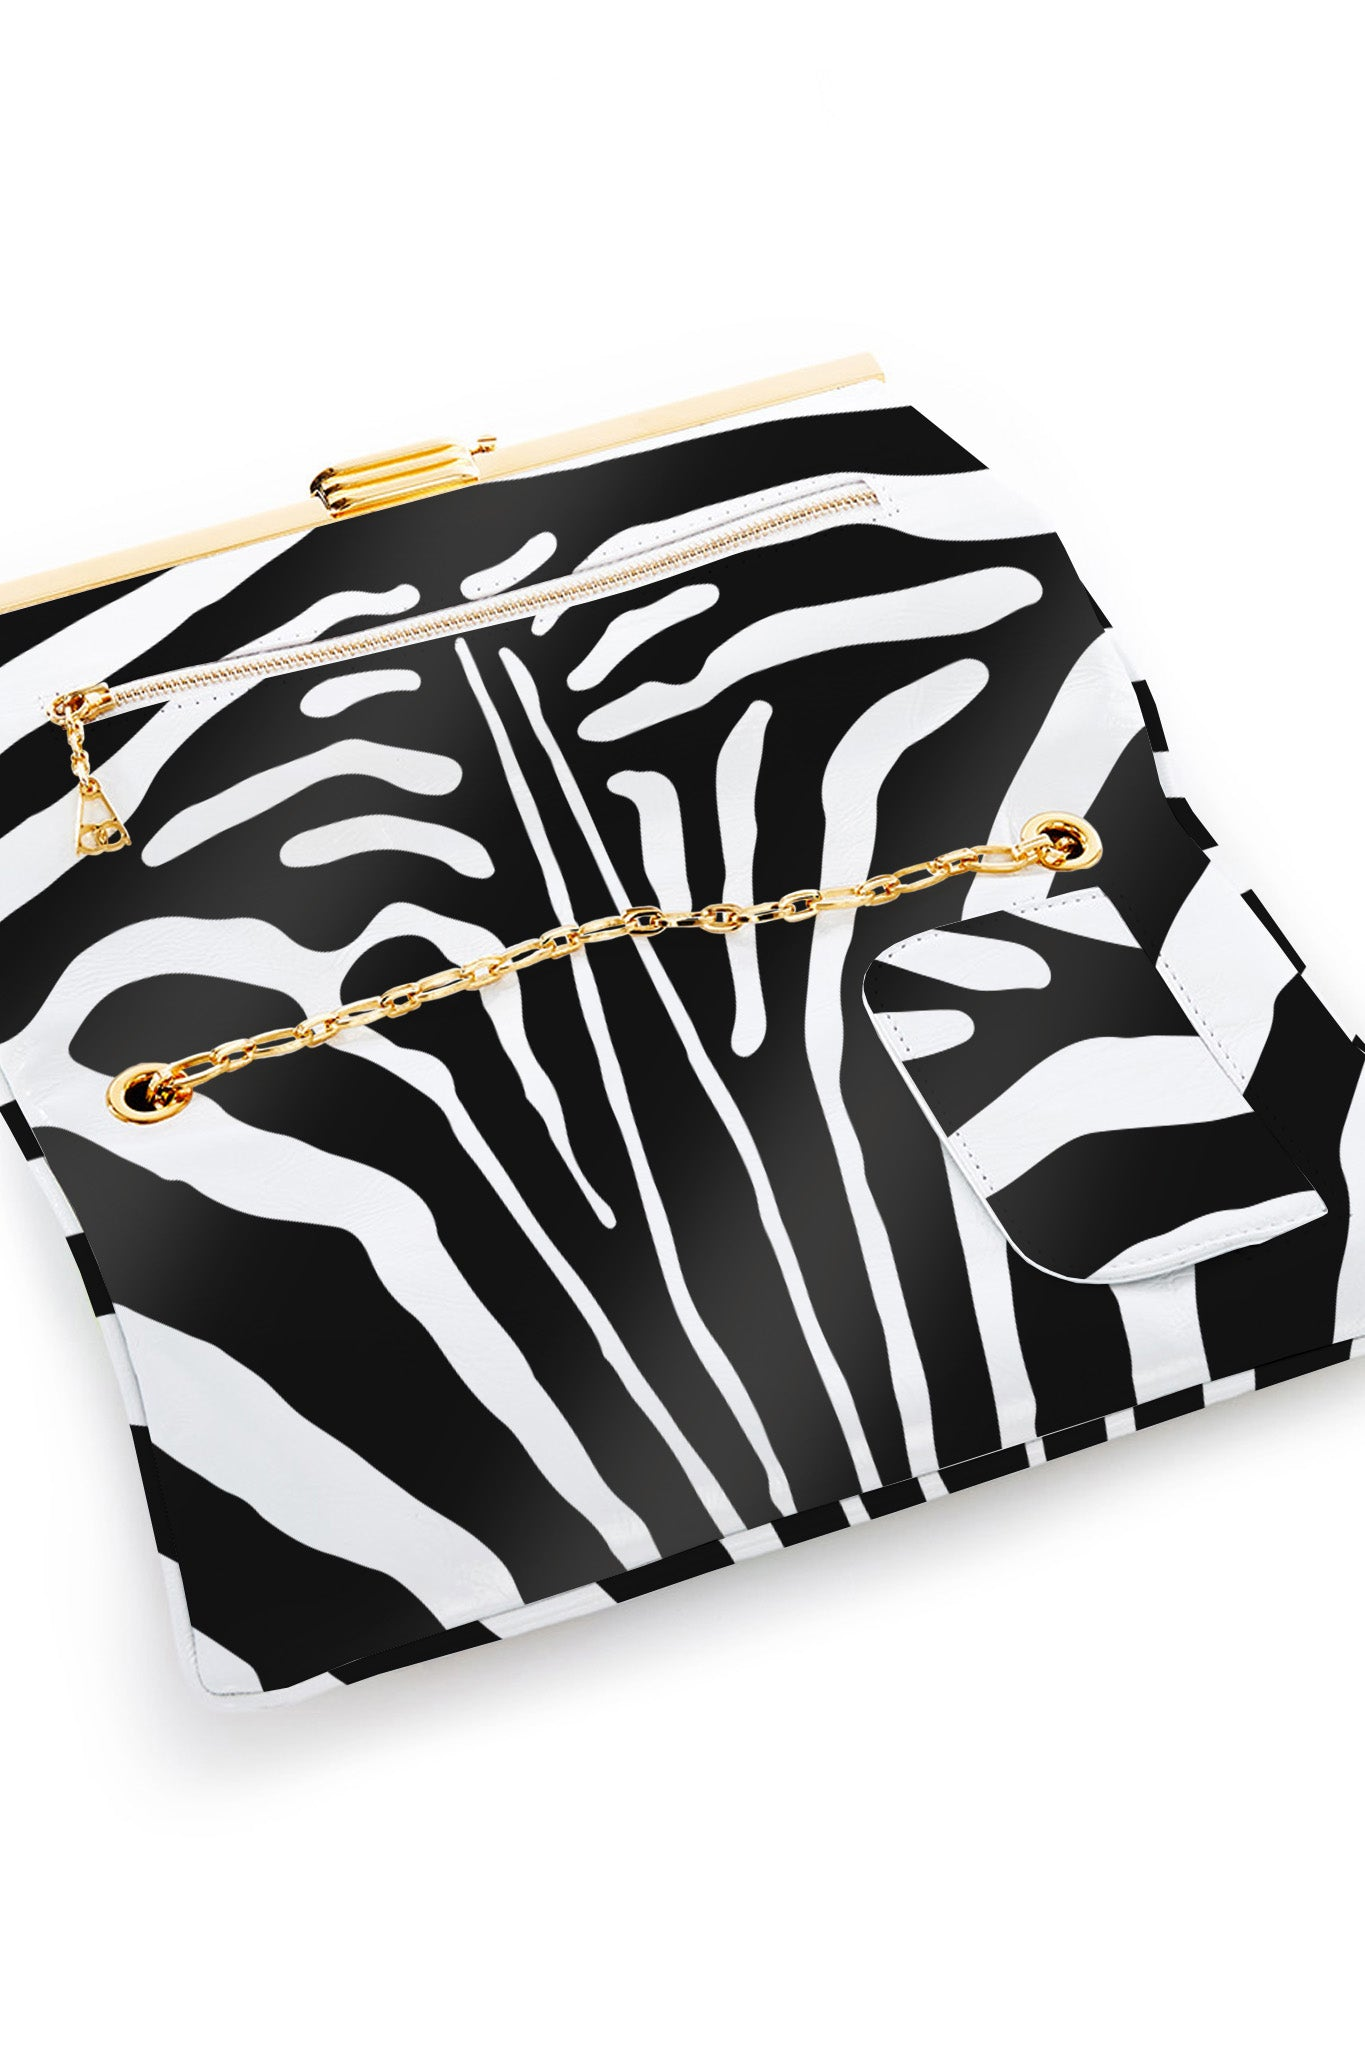 PM Clutch in Zebra Printed Leather